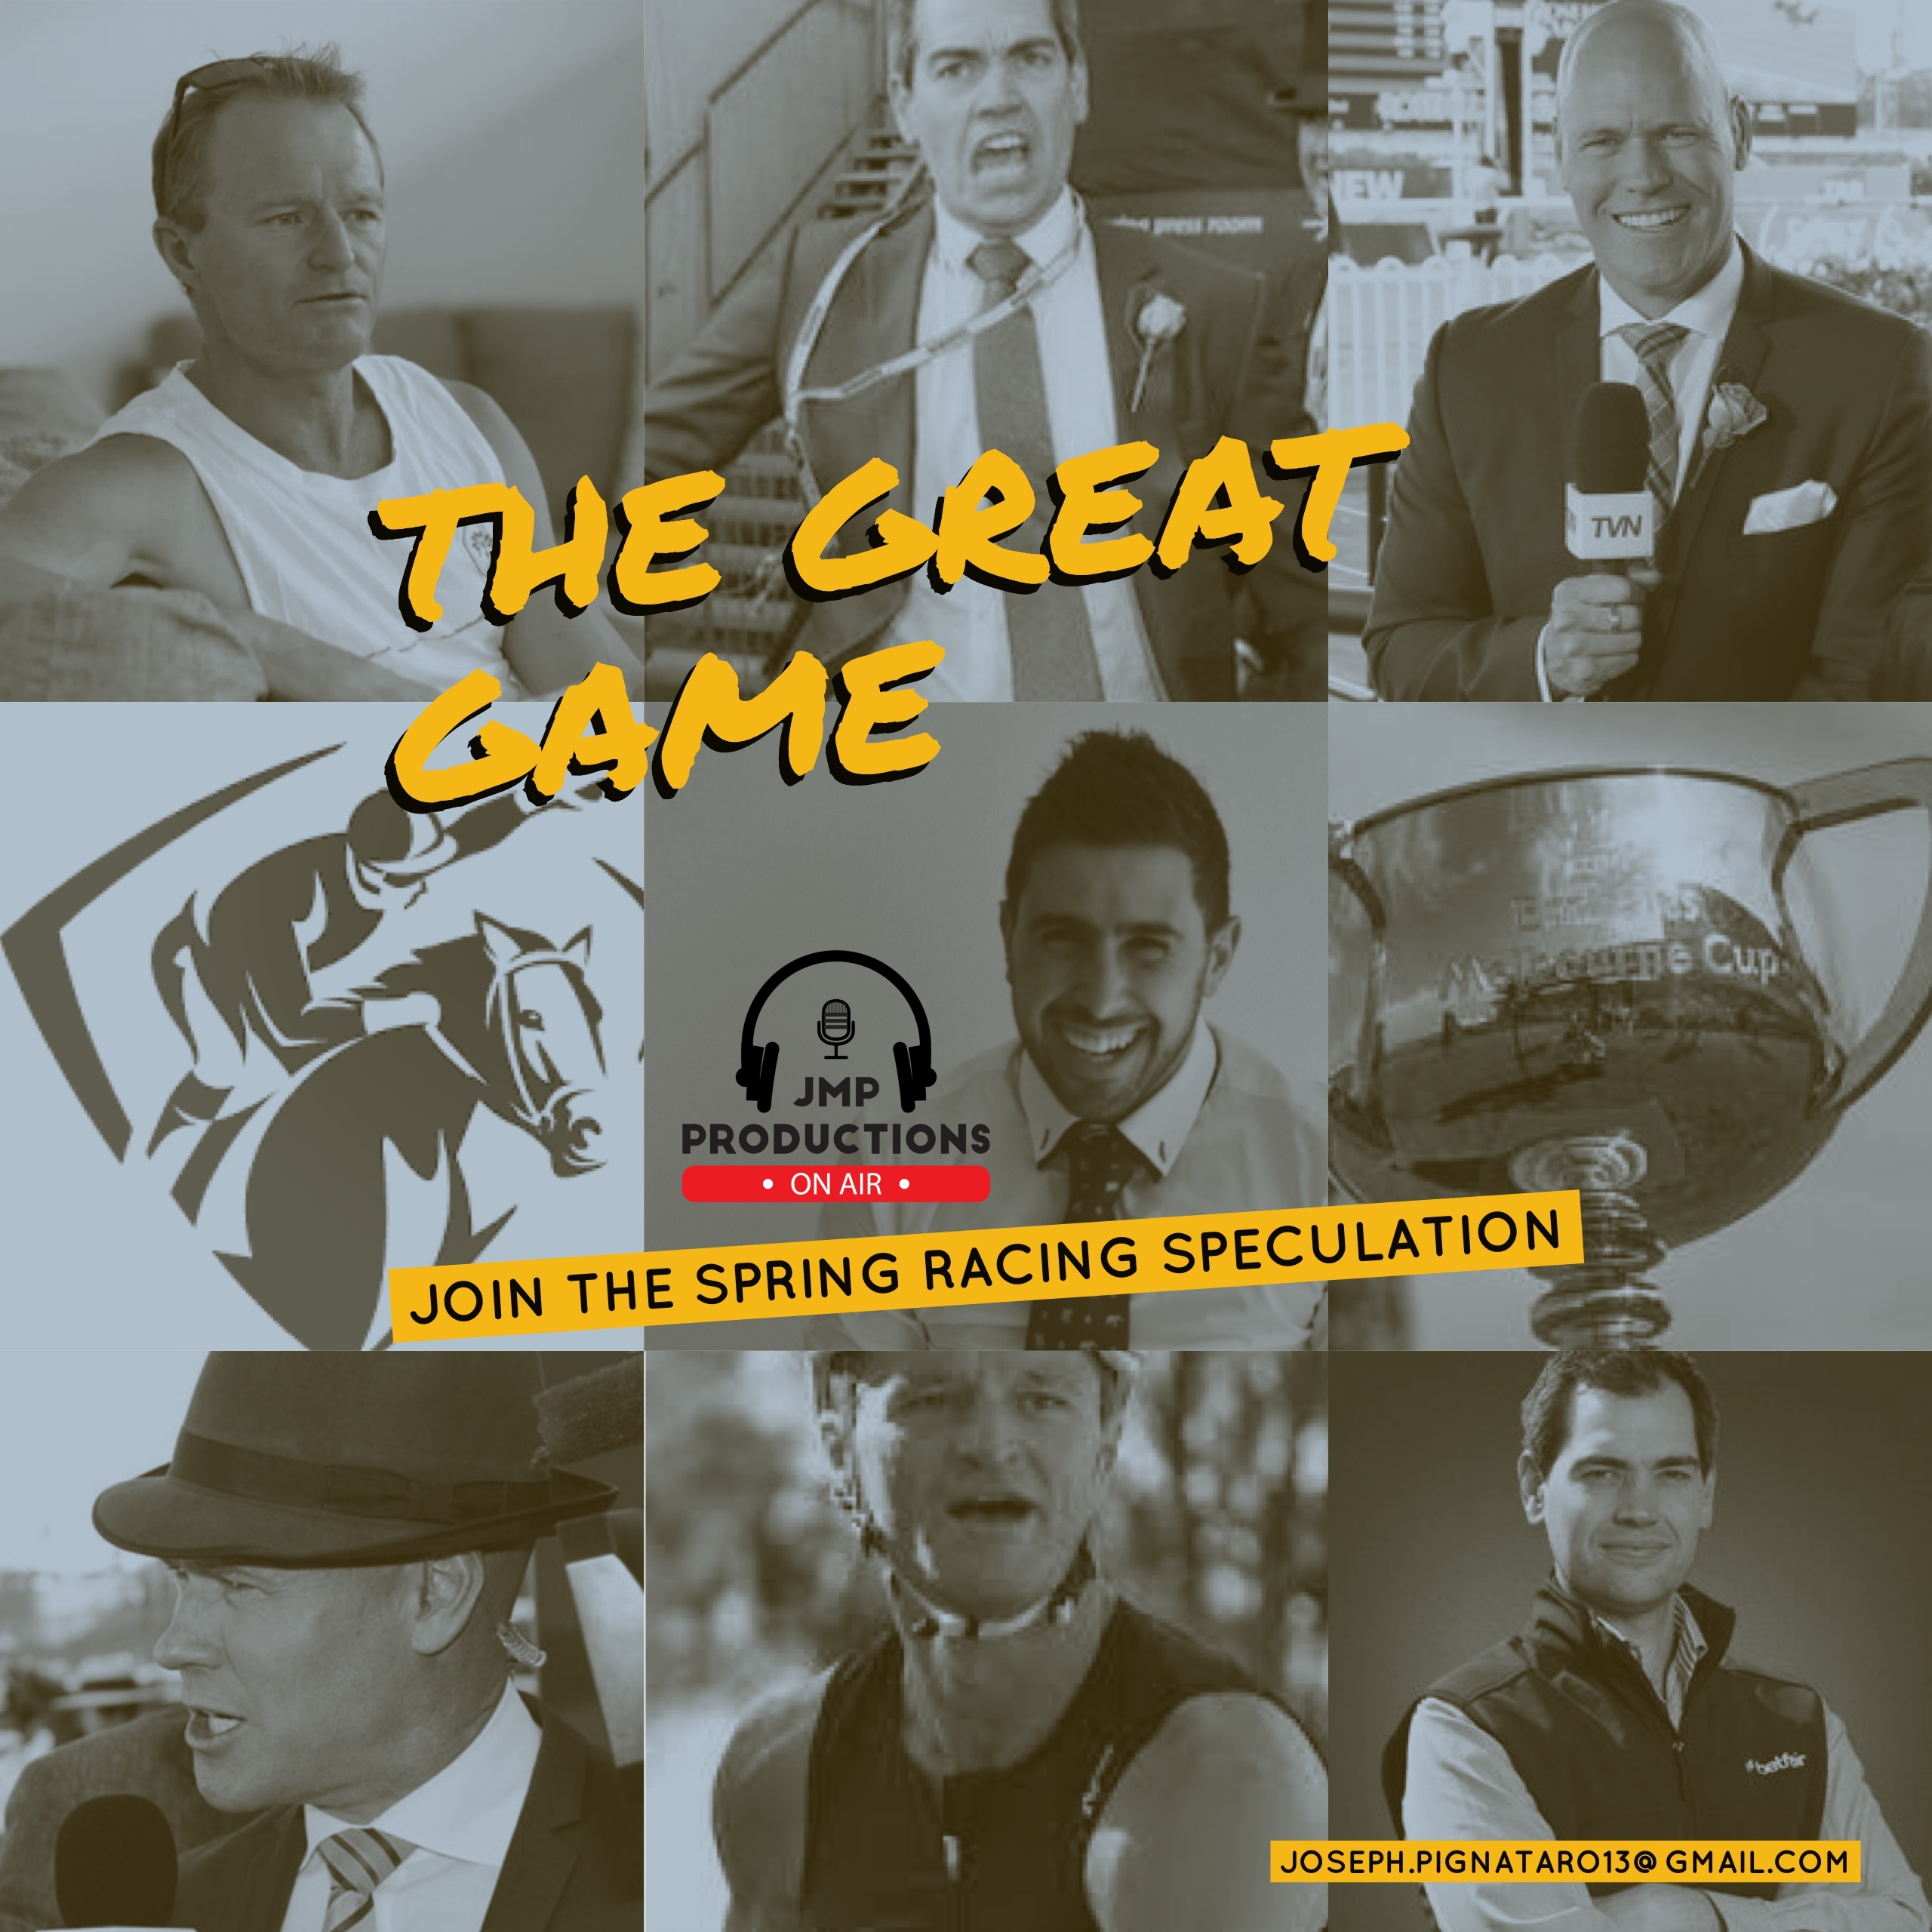 Episode 22 - The Great Game (May 23, 2019)